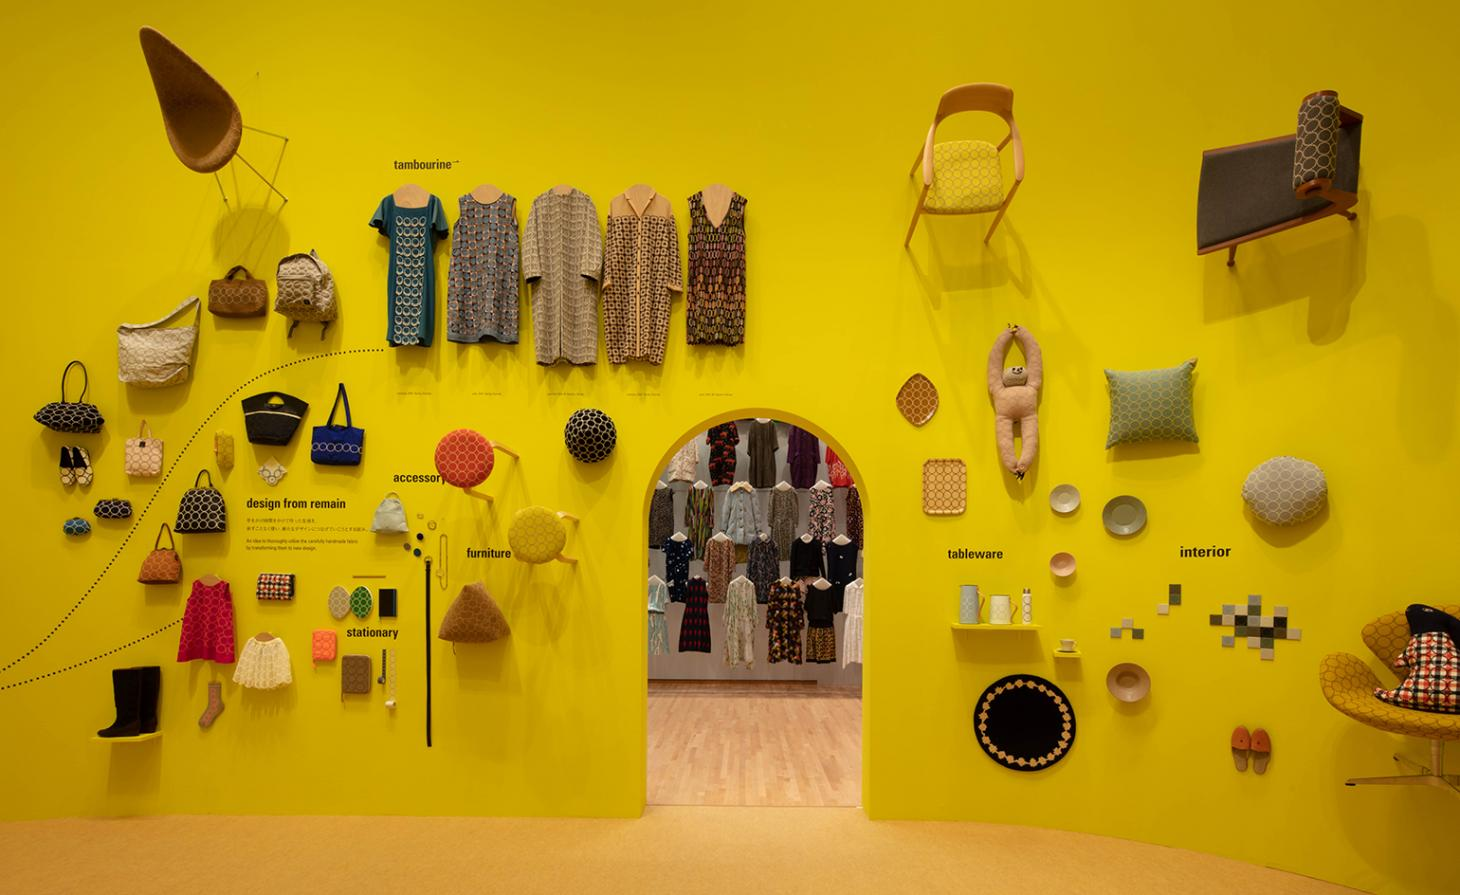 A yellow wall is adorned with clothes and accessories